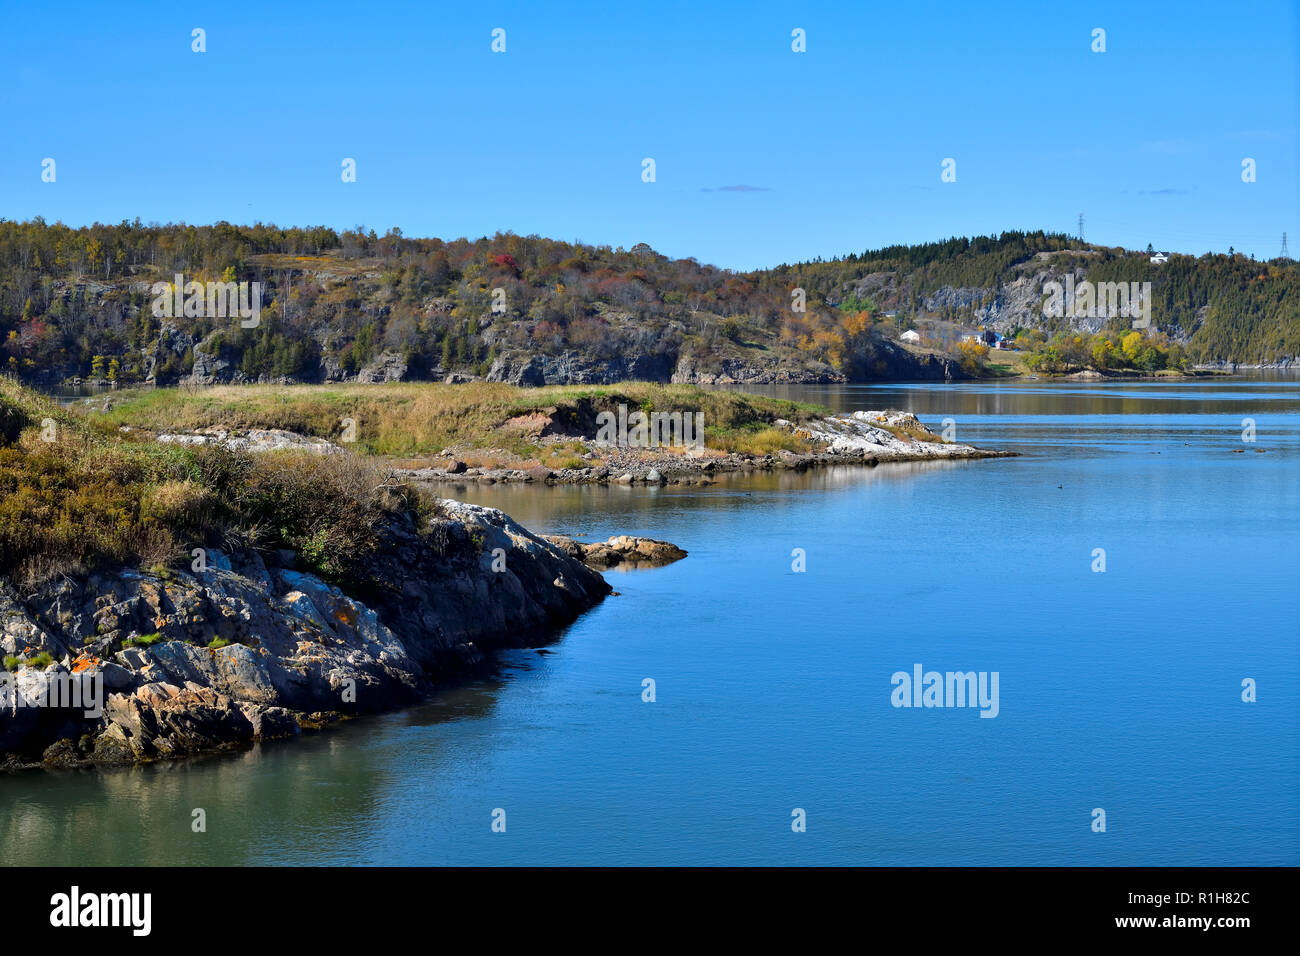 A landscape image looking upriver from the mouth of the Saint John river near the worlds famous Reversing Falls in Saint John New Brunswick Canada. - Stock Image